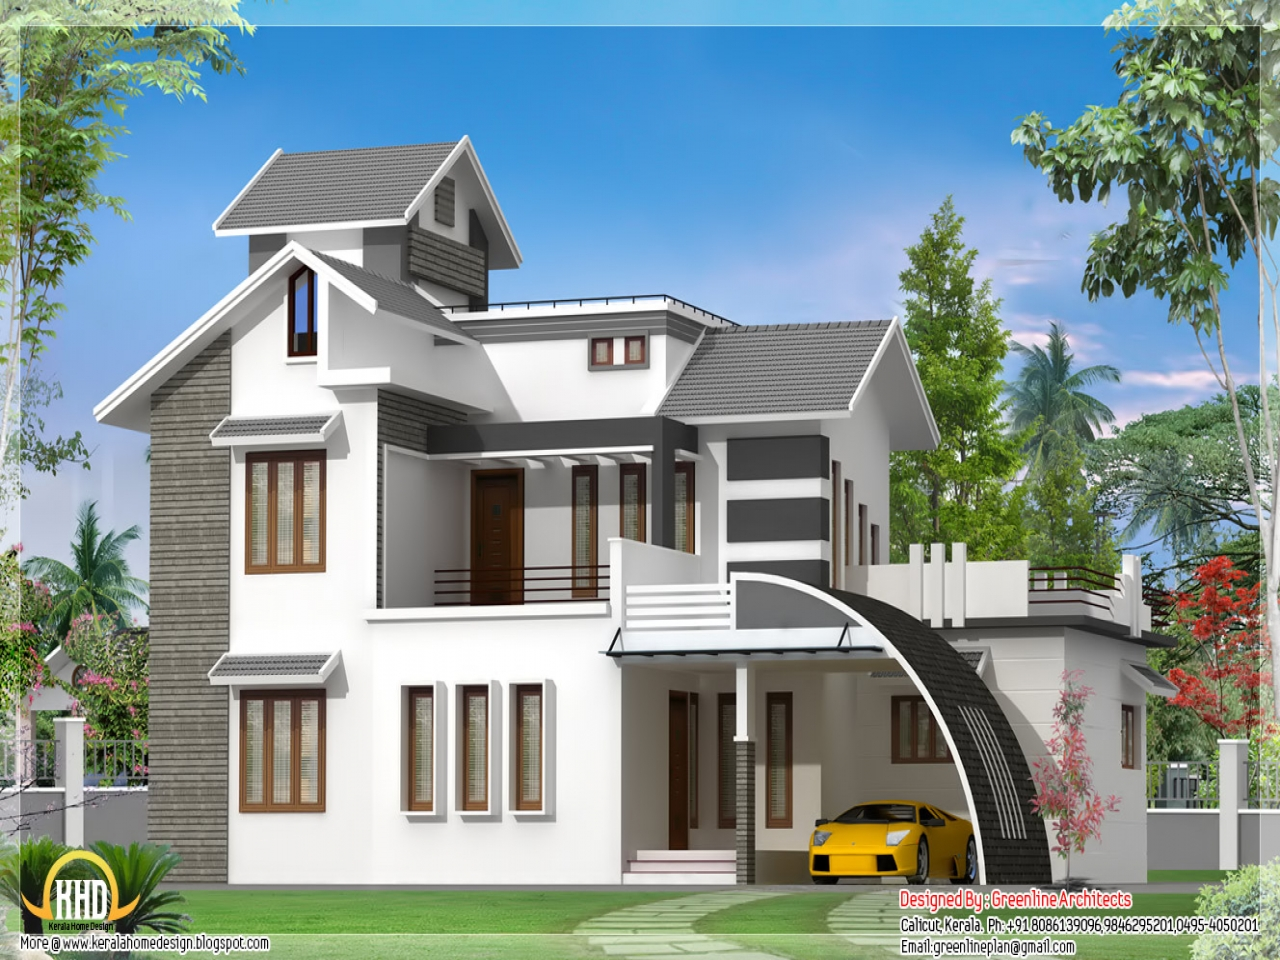 Bungalow House Designs Indian Style House Design Modern